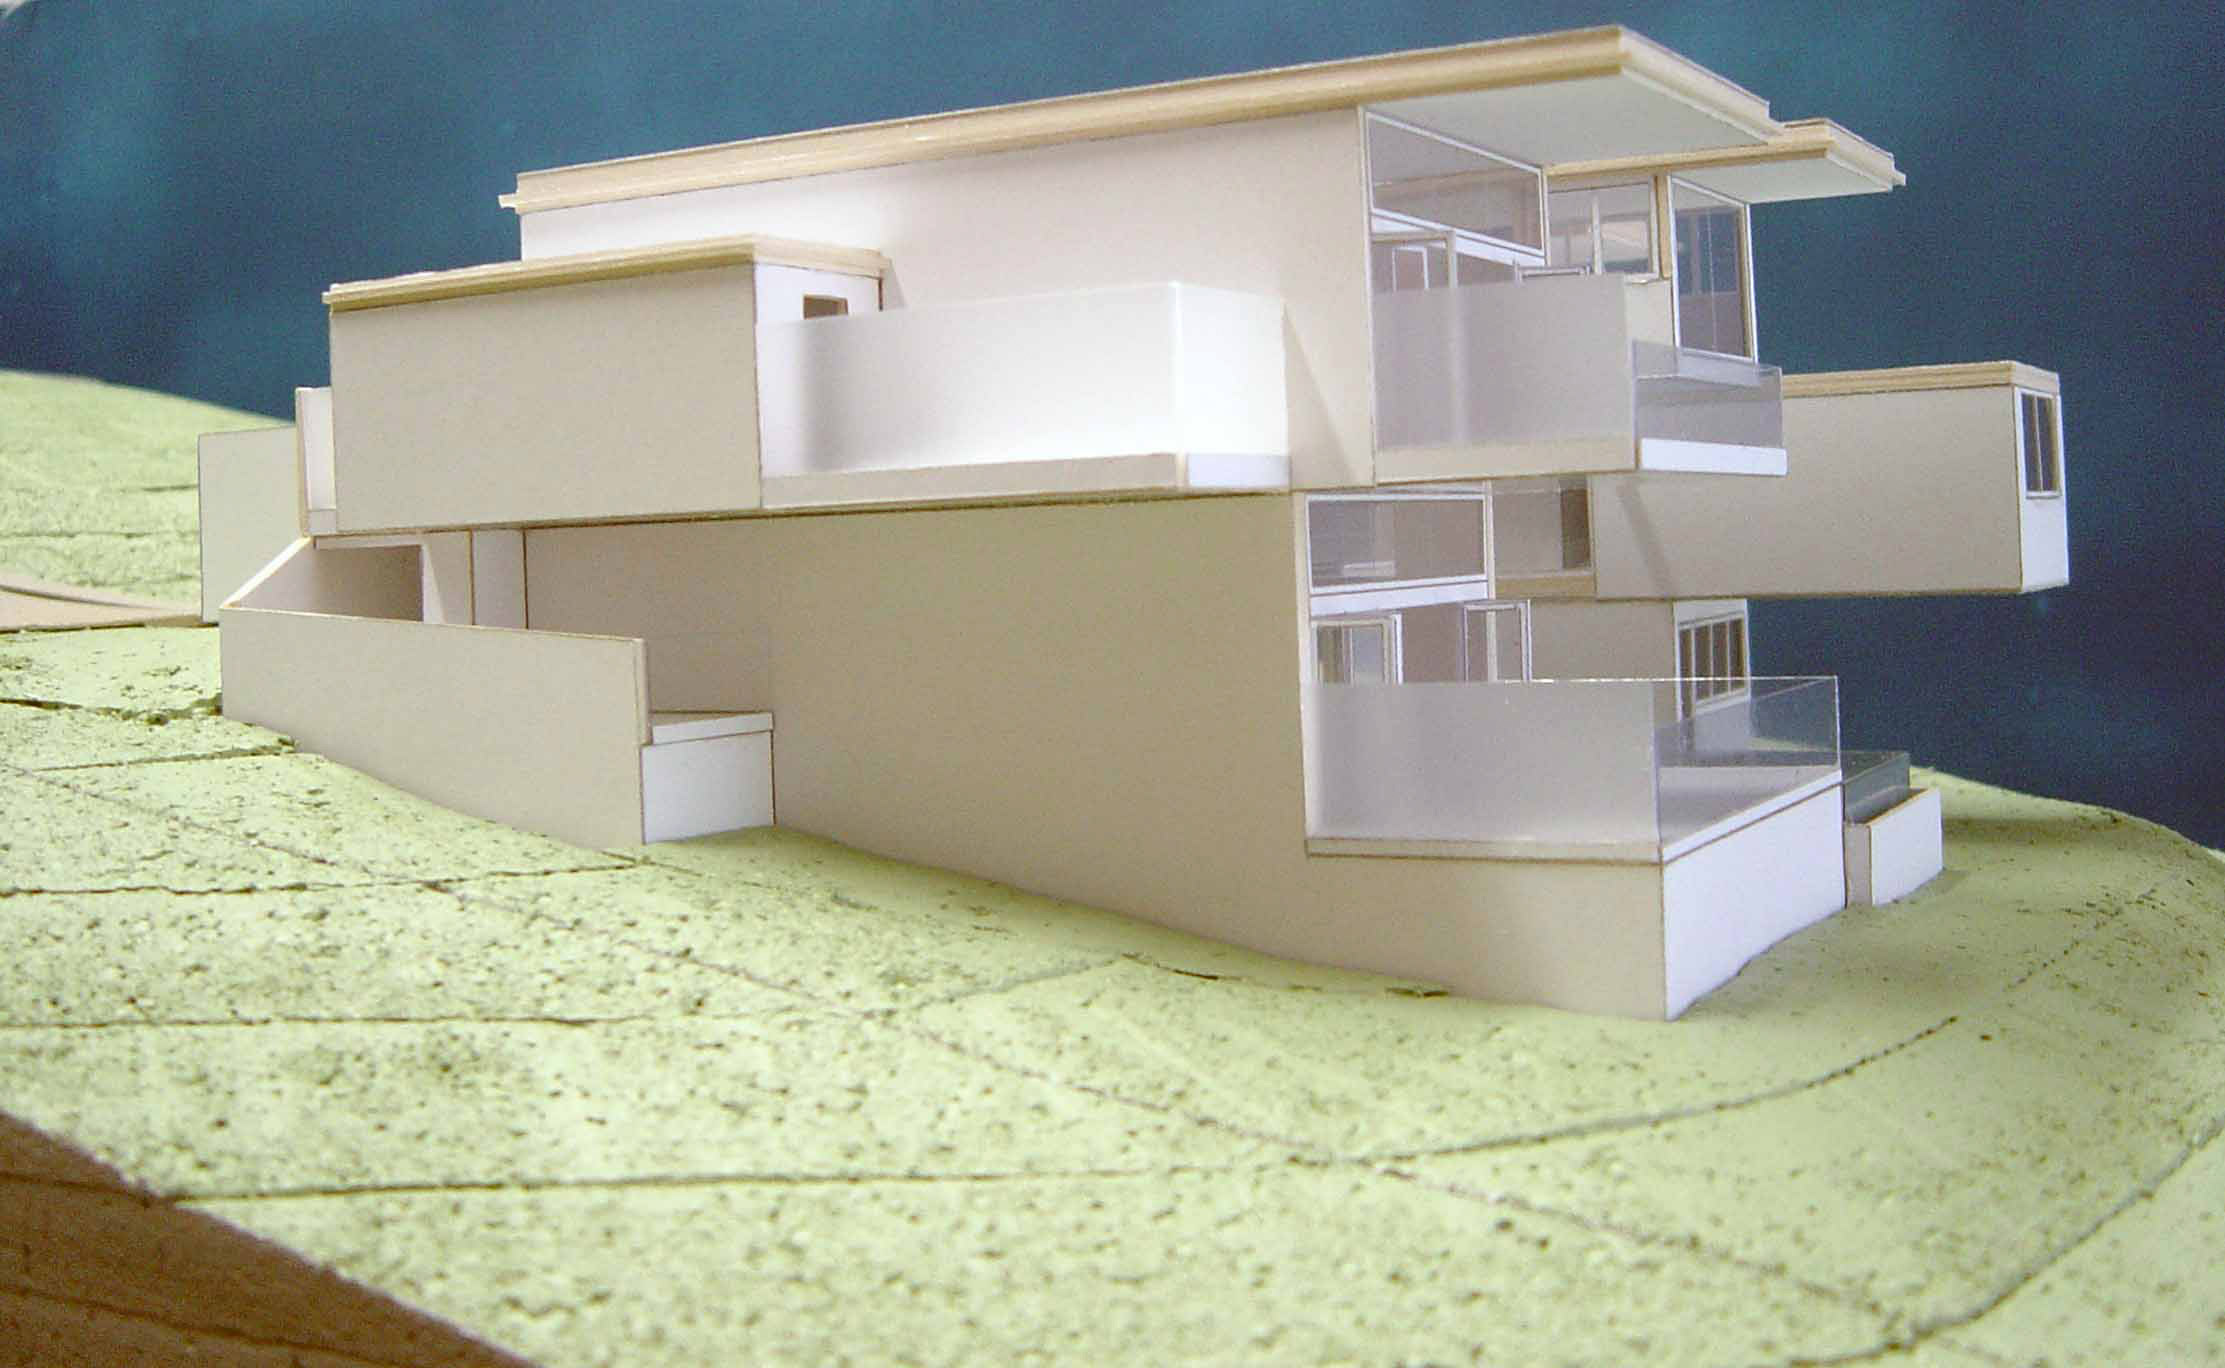 Scale 1-100 Single Residence Study Model. Victoria